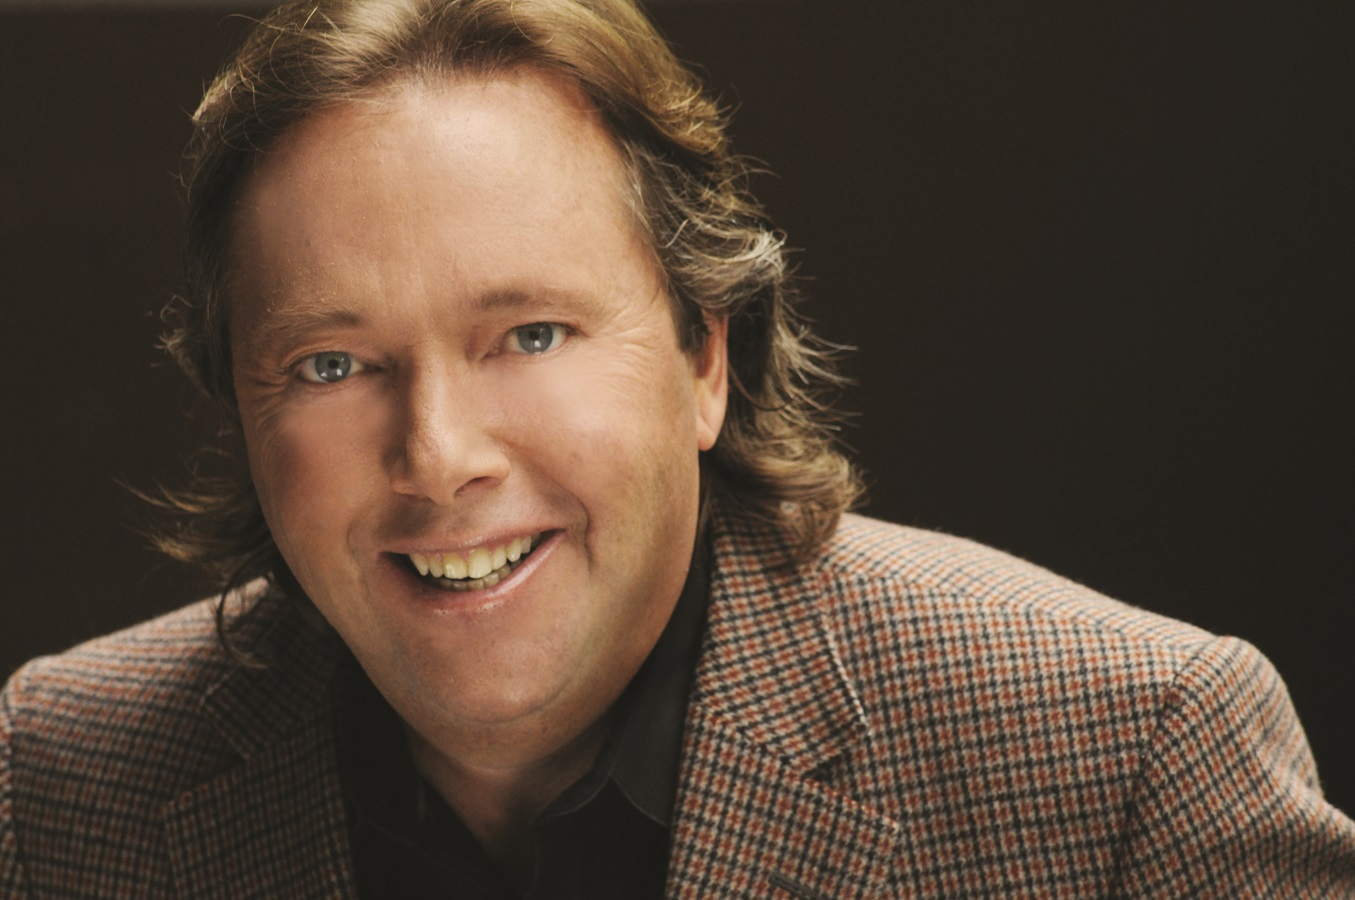 Richard Gelfond, CEO of IMAX Corporation